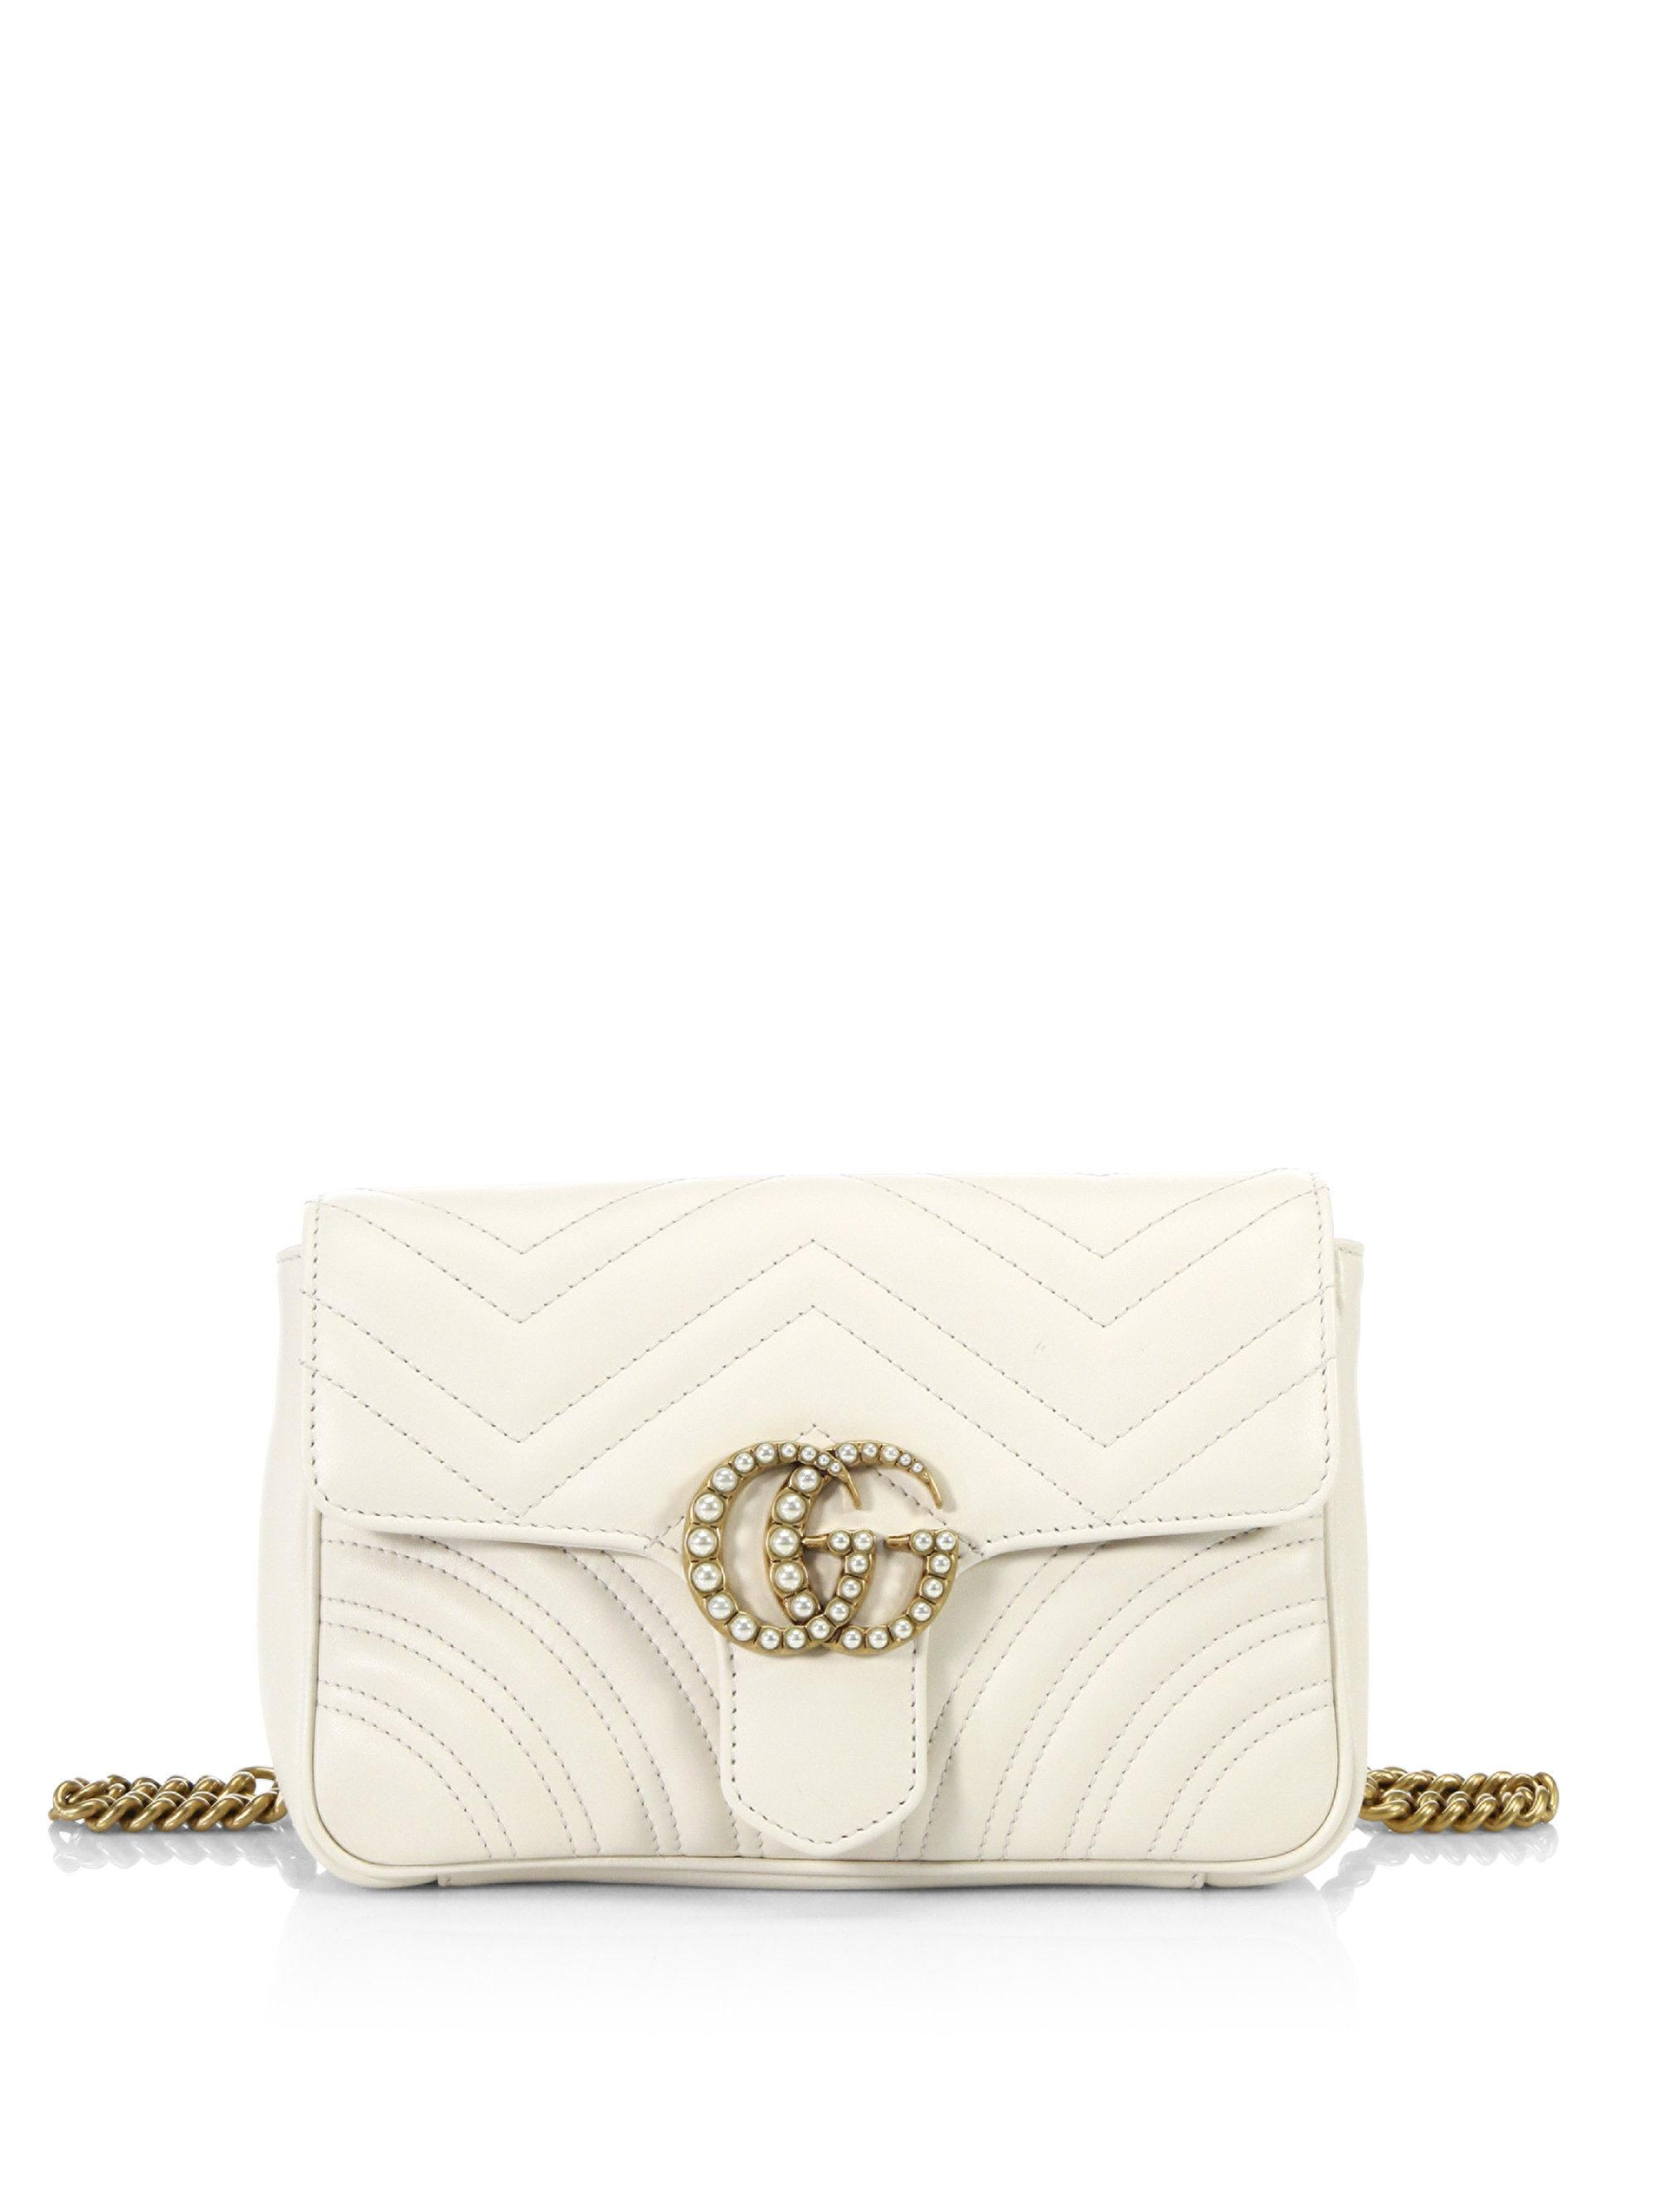 d3324f0a5d7713 Gucci Gg Marmont Quilted Leather Chain Belt Bag in White - Lyst